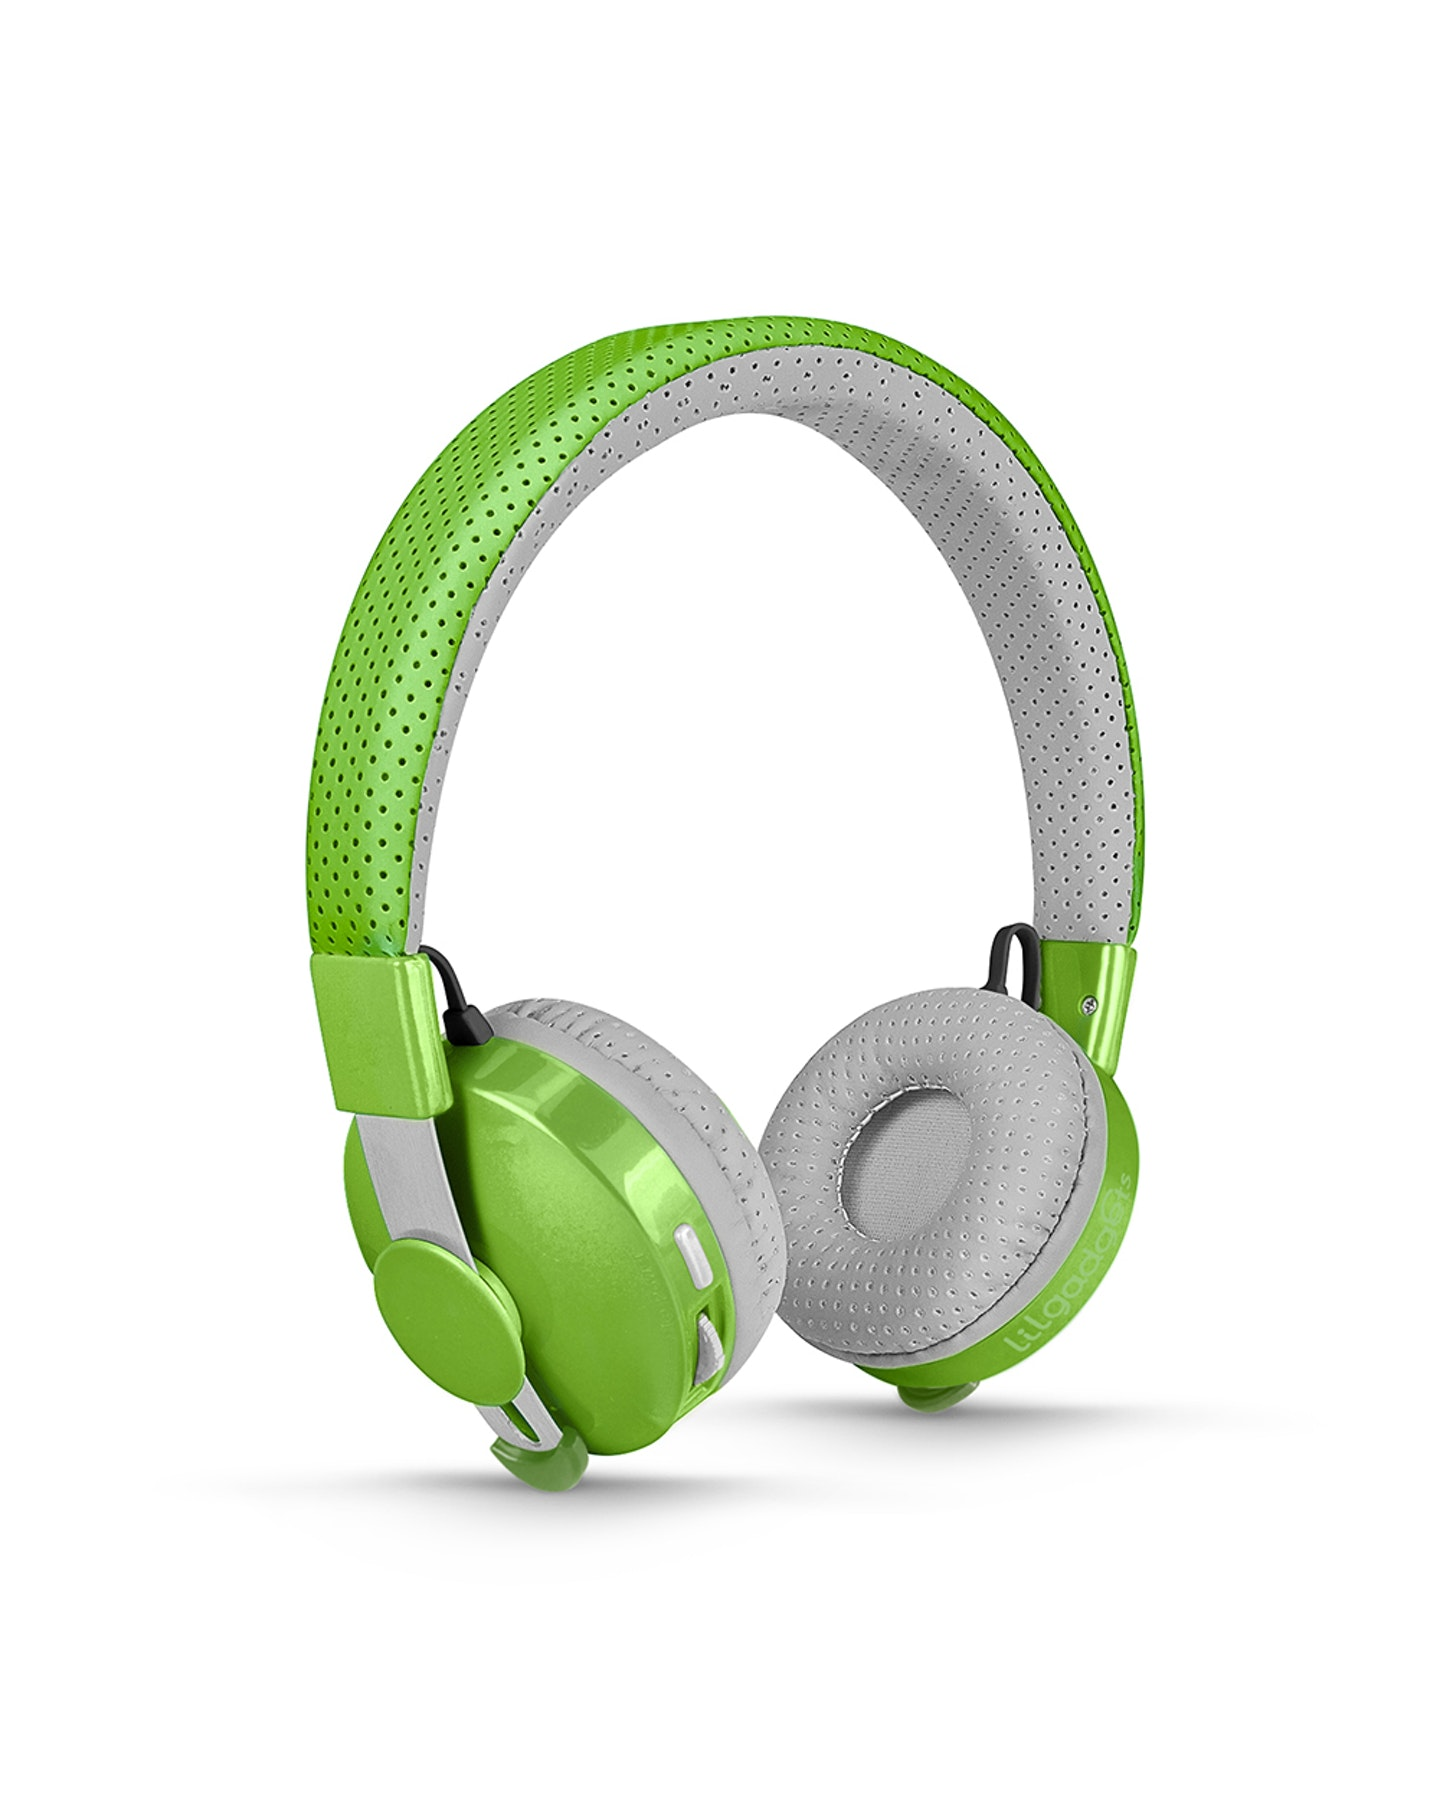 Lil Gadgets Untangled Pro Children'S Wireless Bluetooth Headphones Green